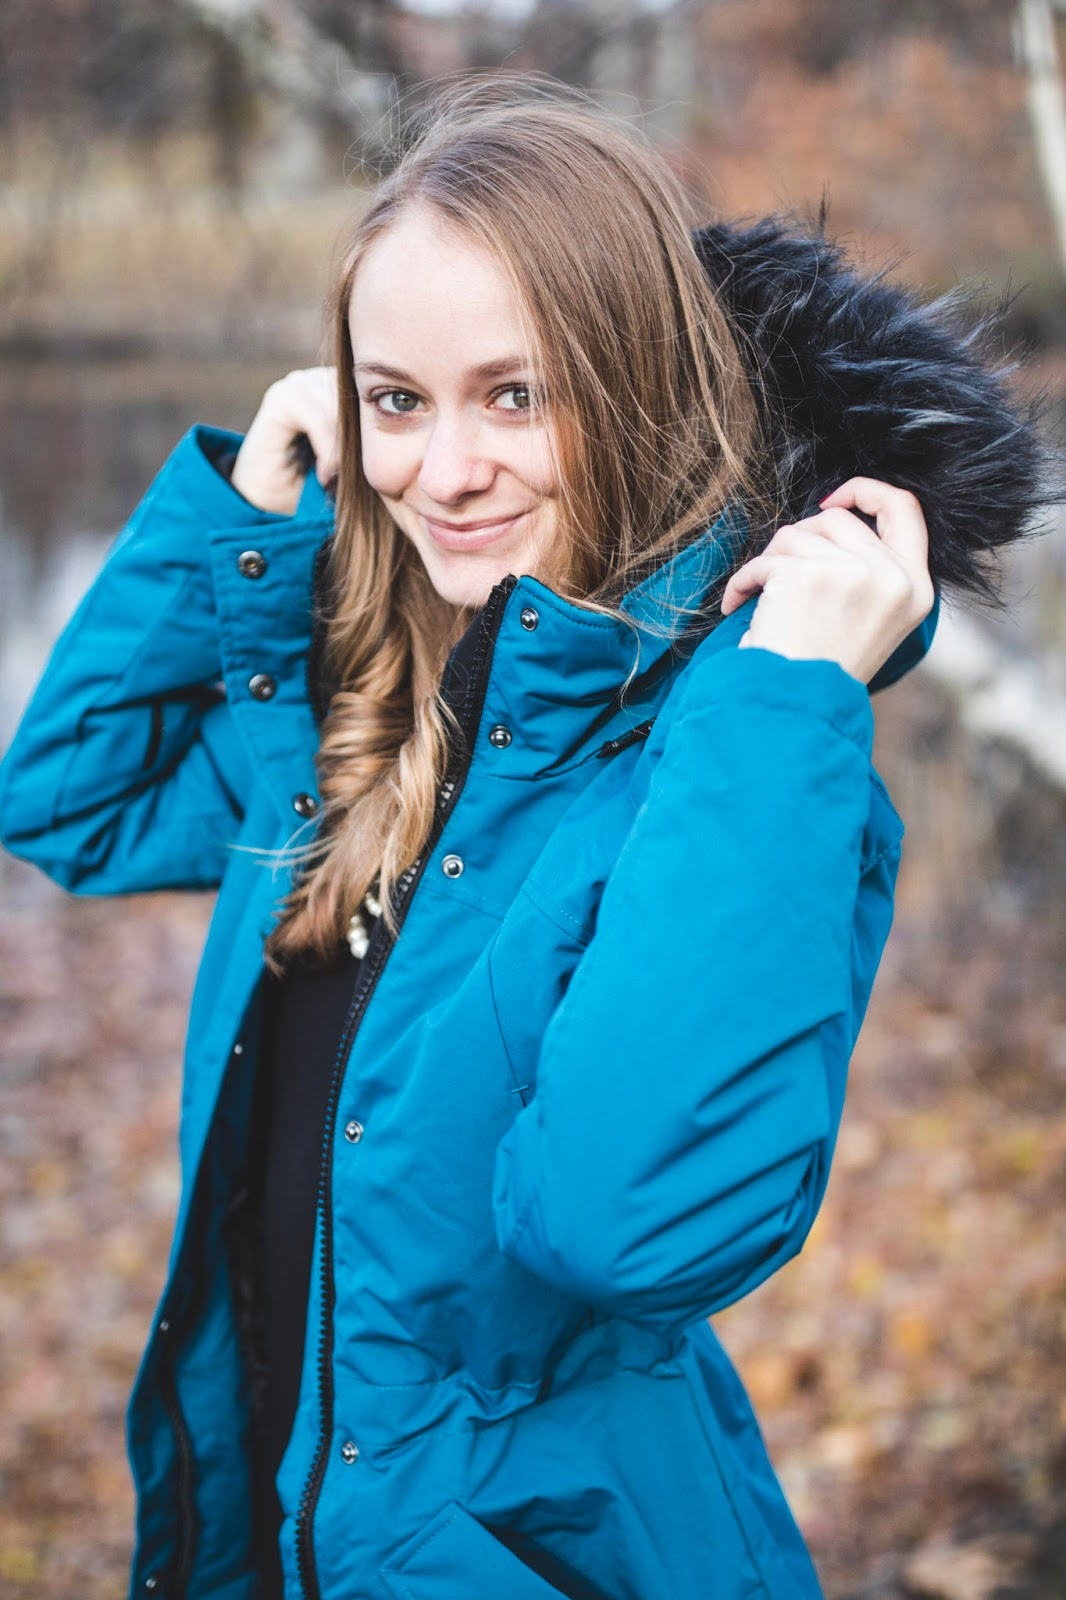 noize-turquoise-winter-coat